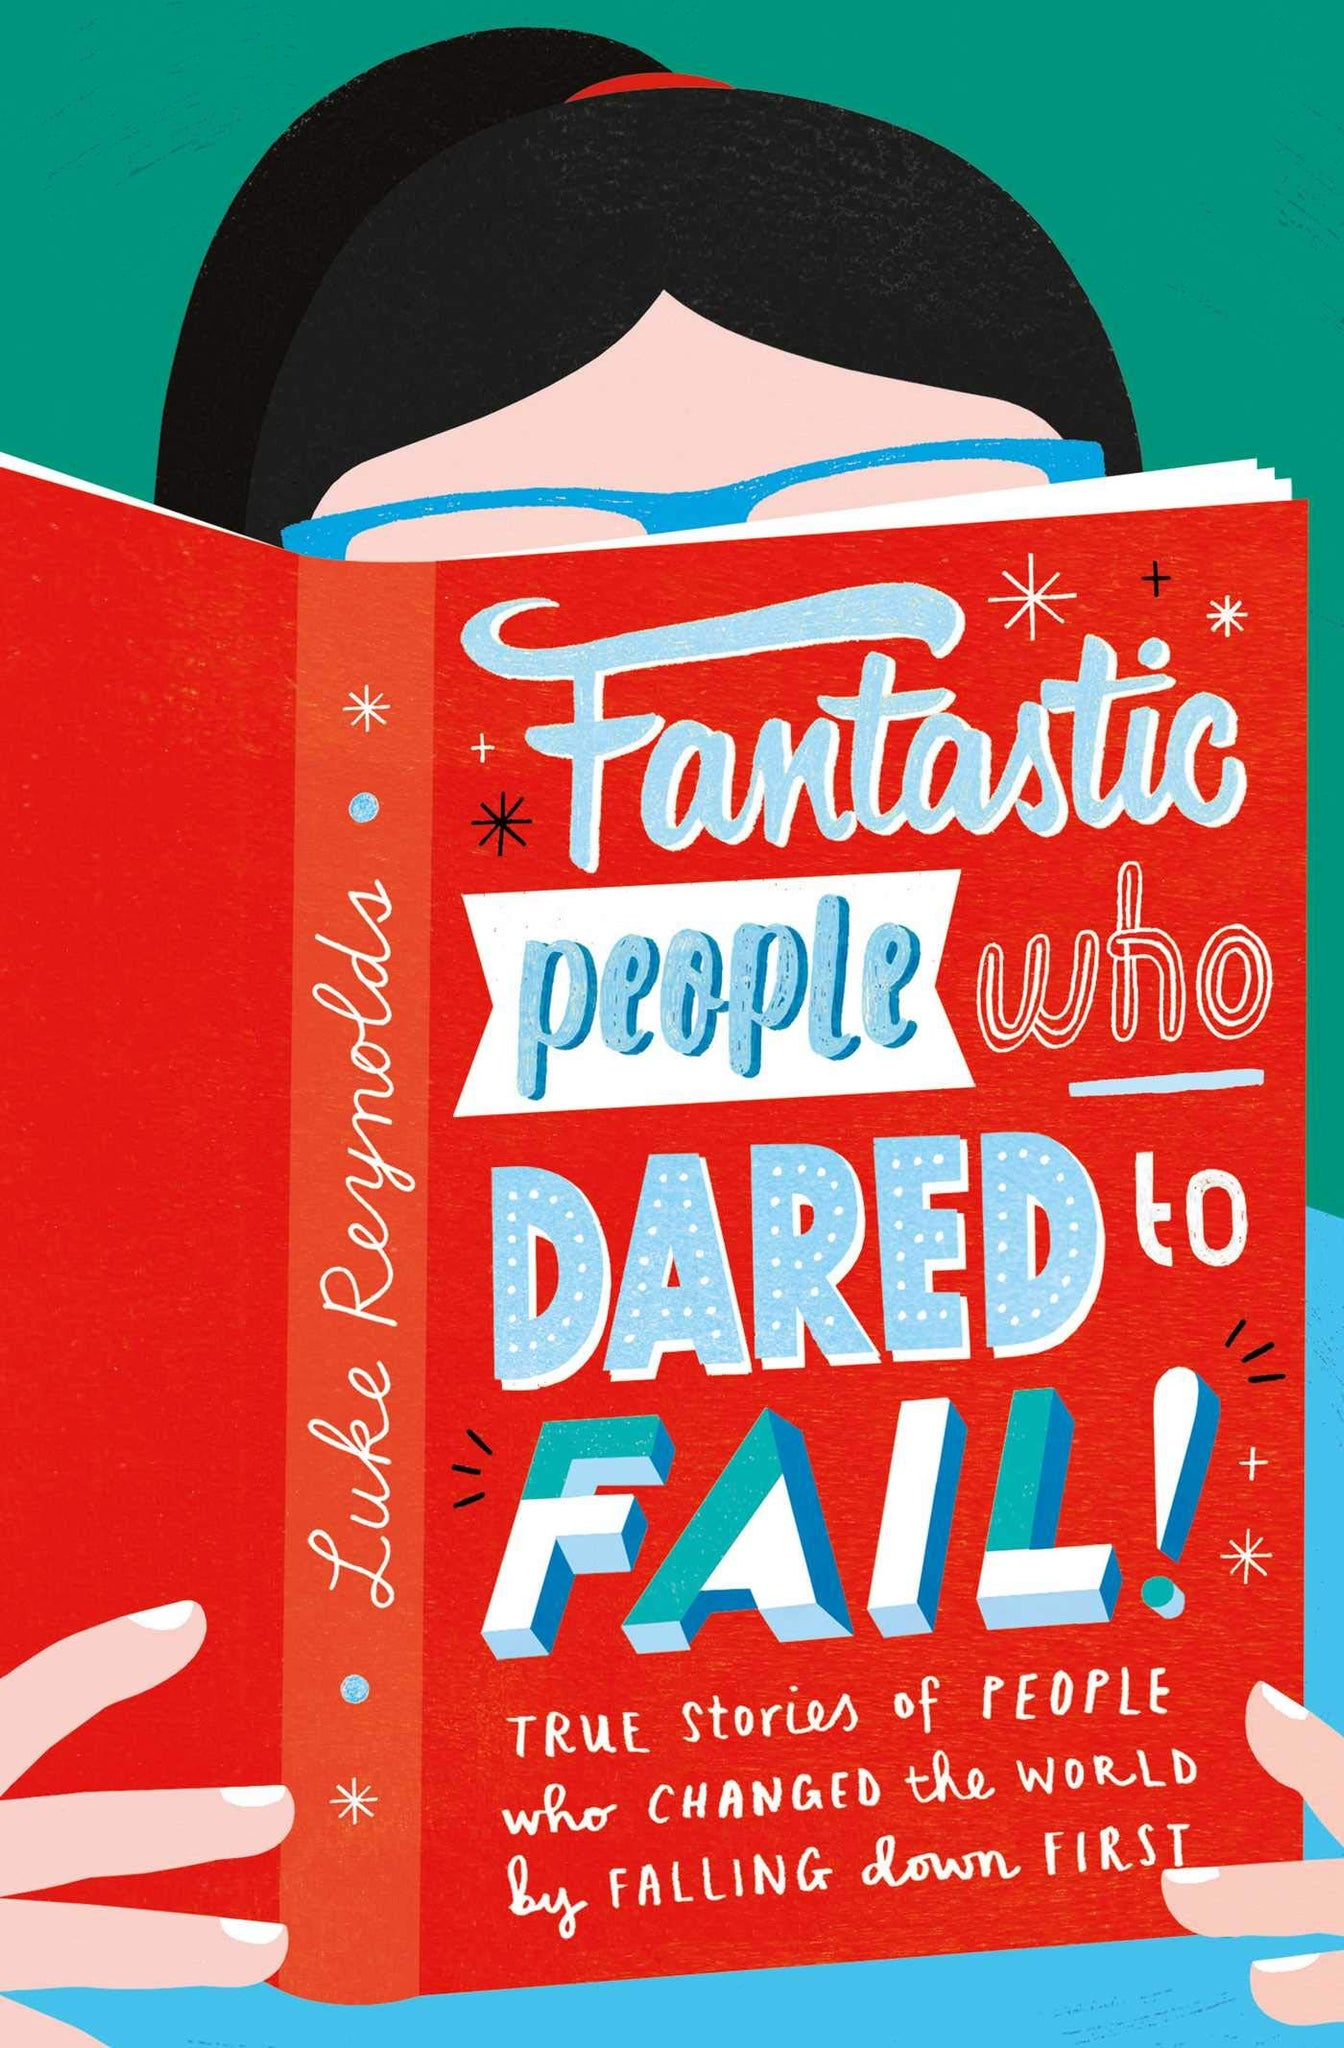 Fantastic People Who Dared to Fail (Book by Luke Reynolds)